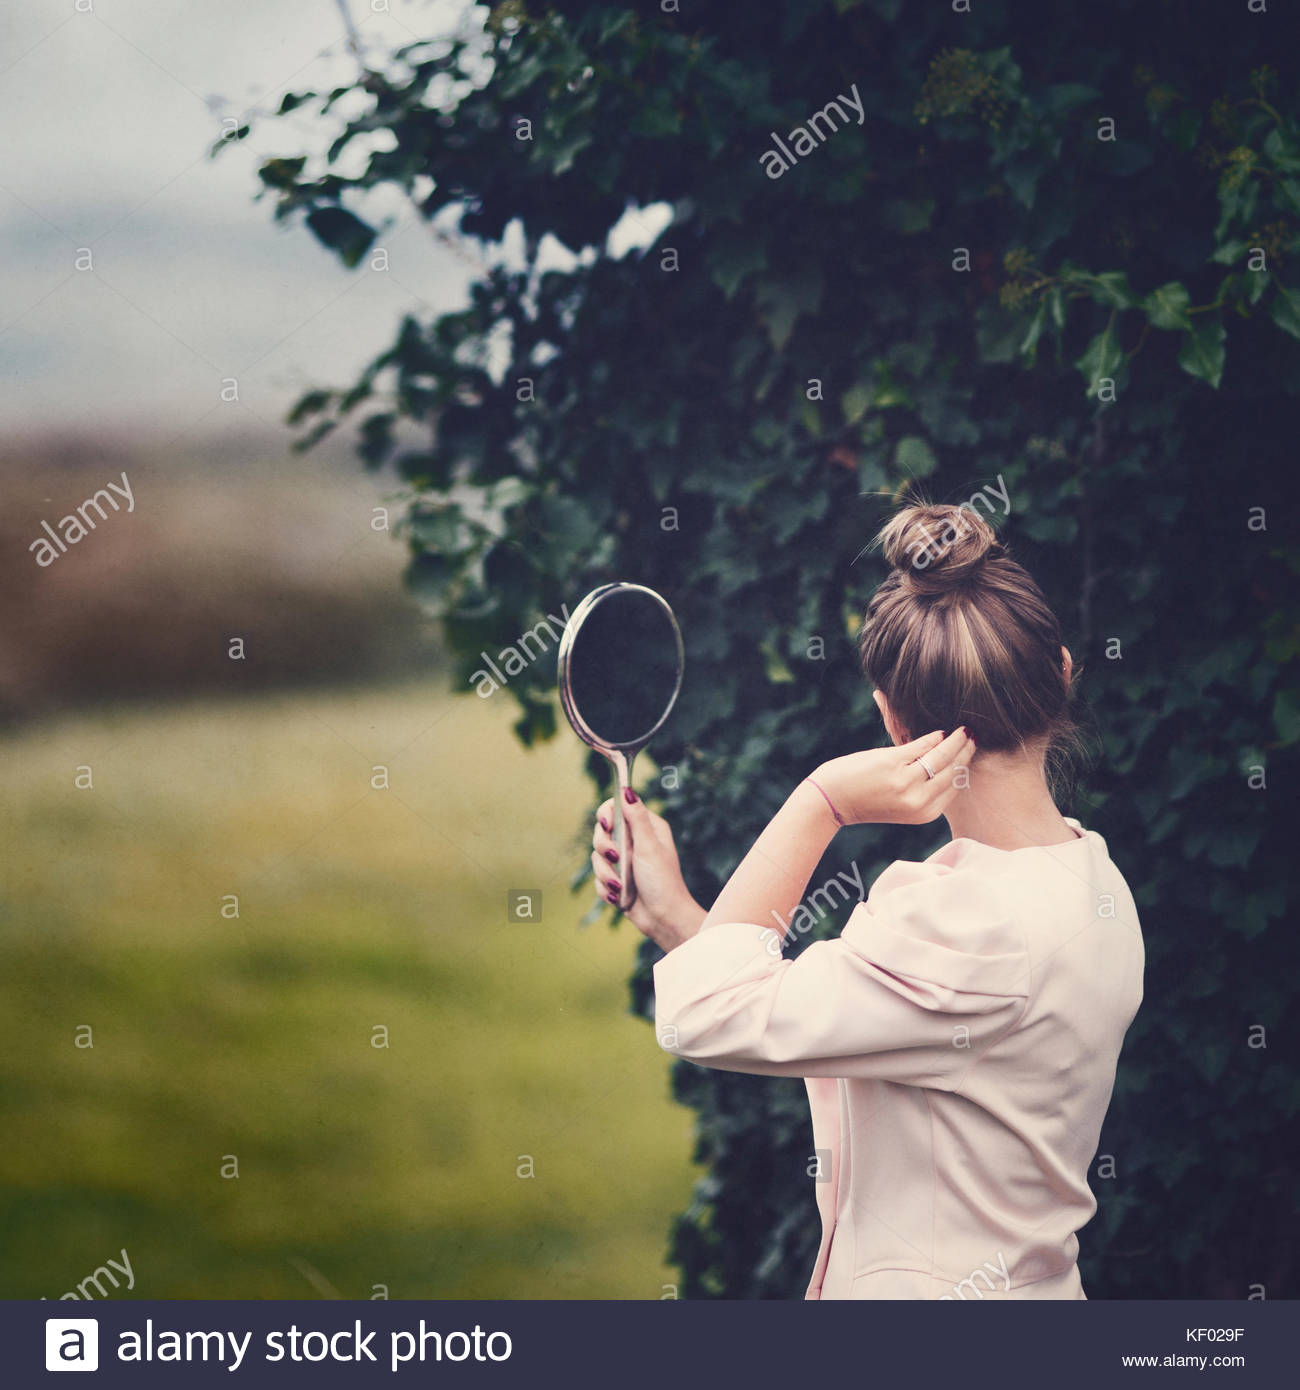 Girl holding a mirror, looking at herself. - Stock Image